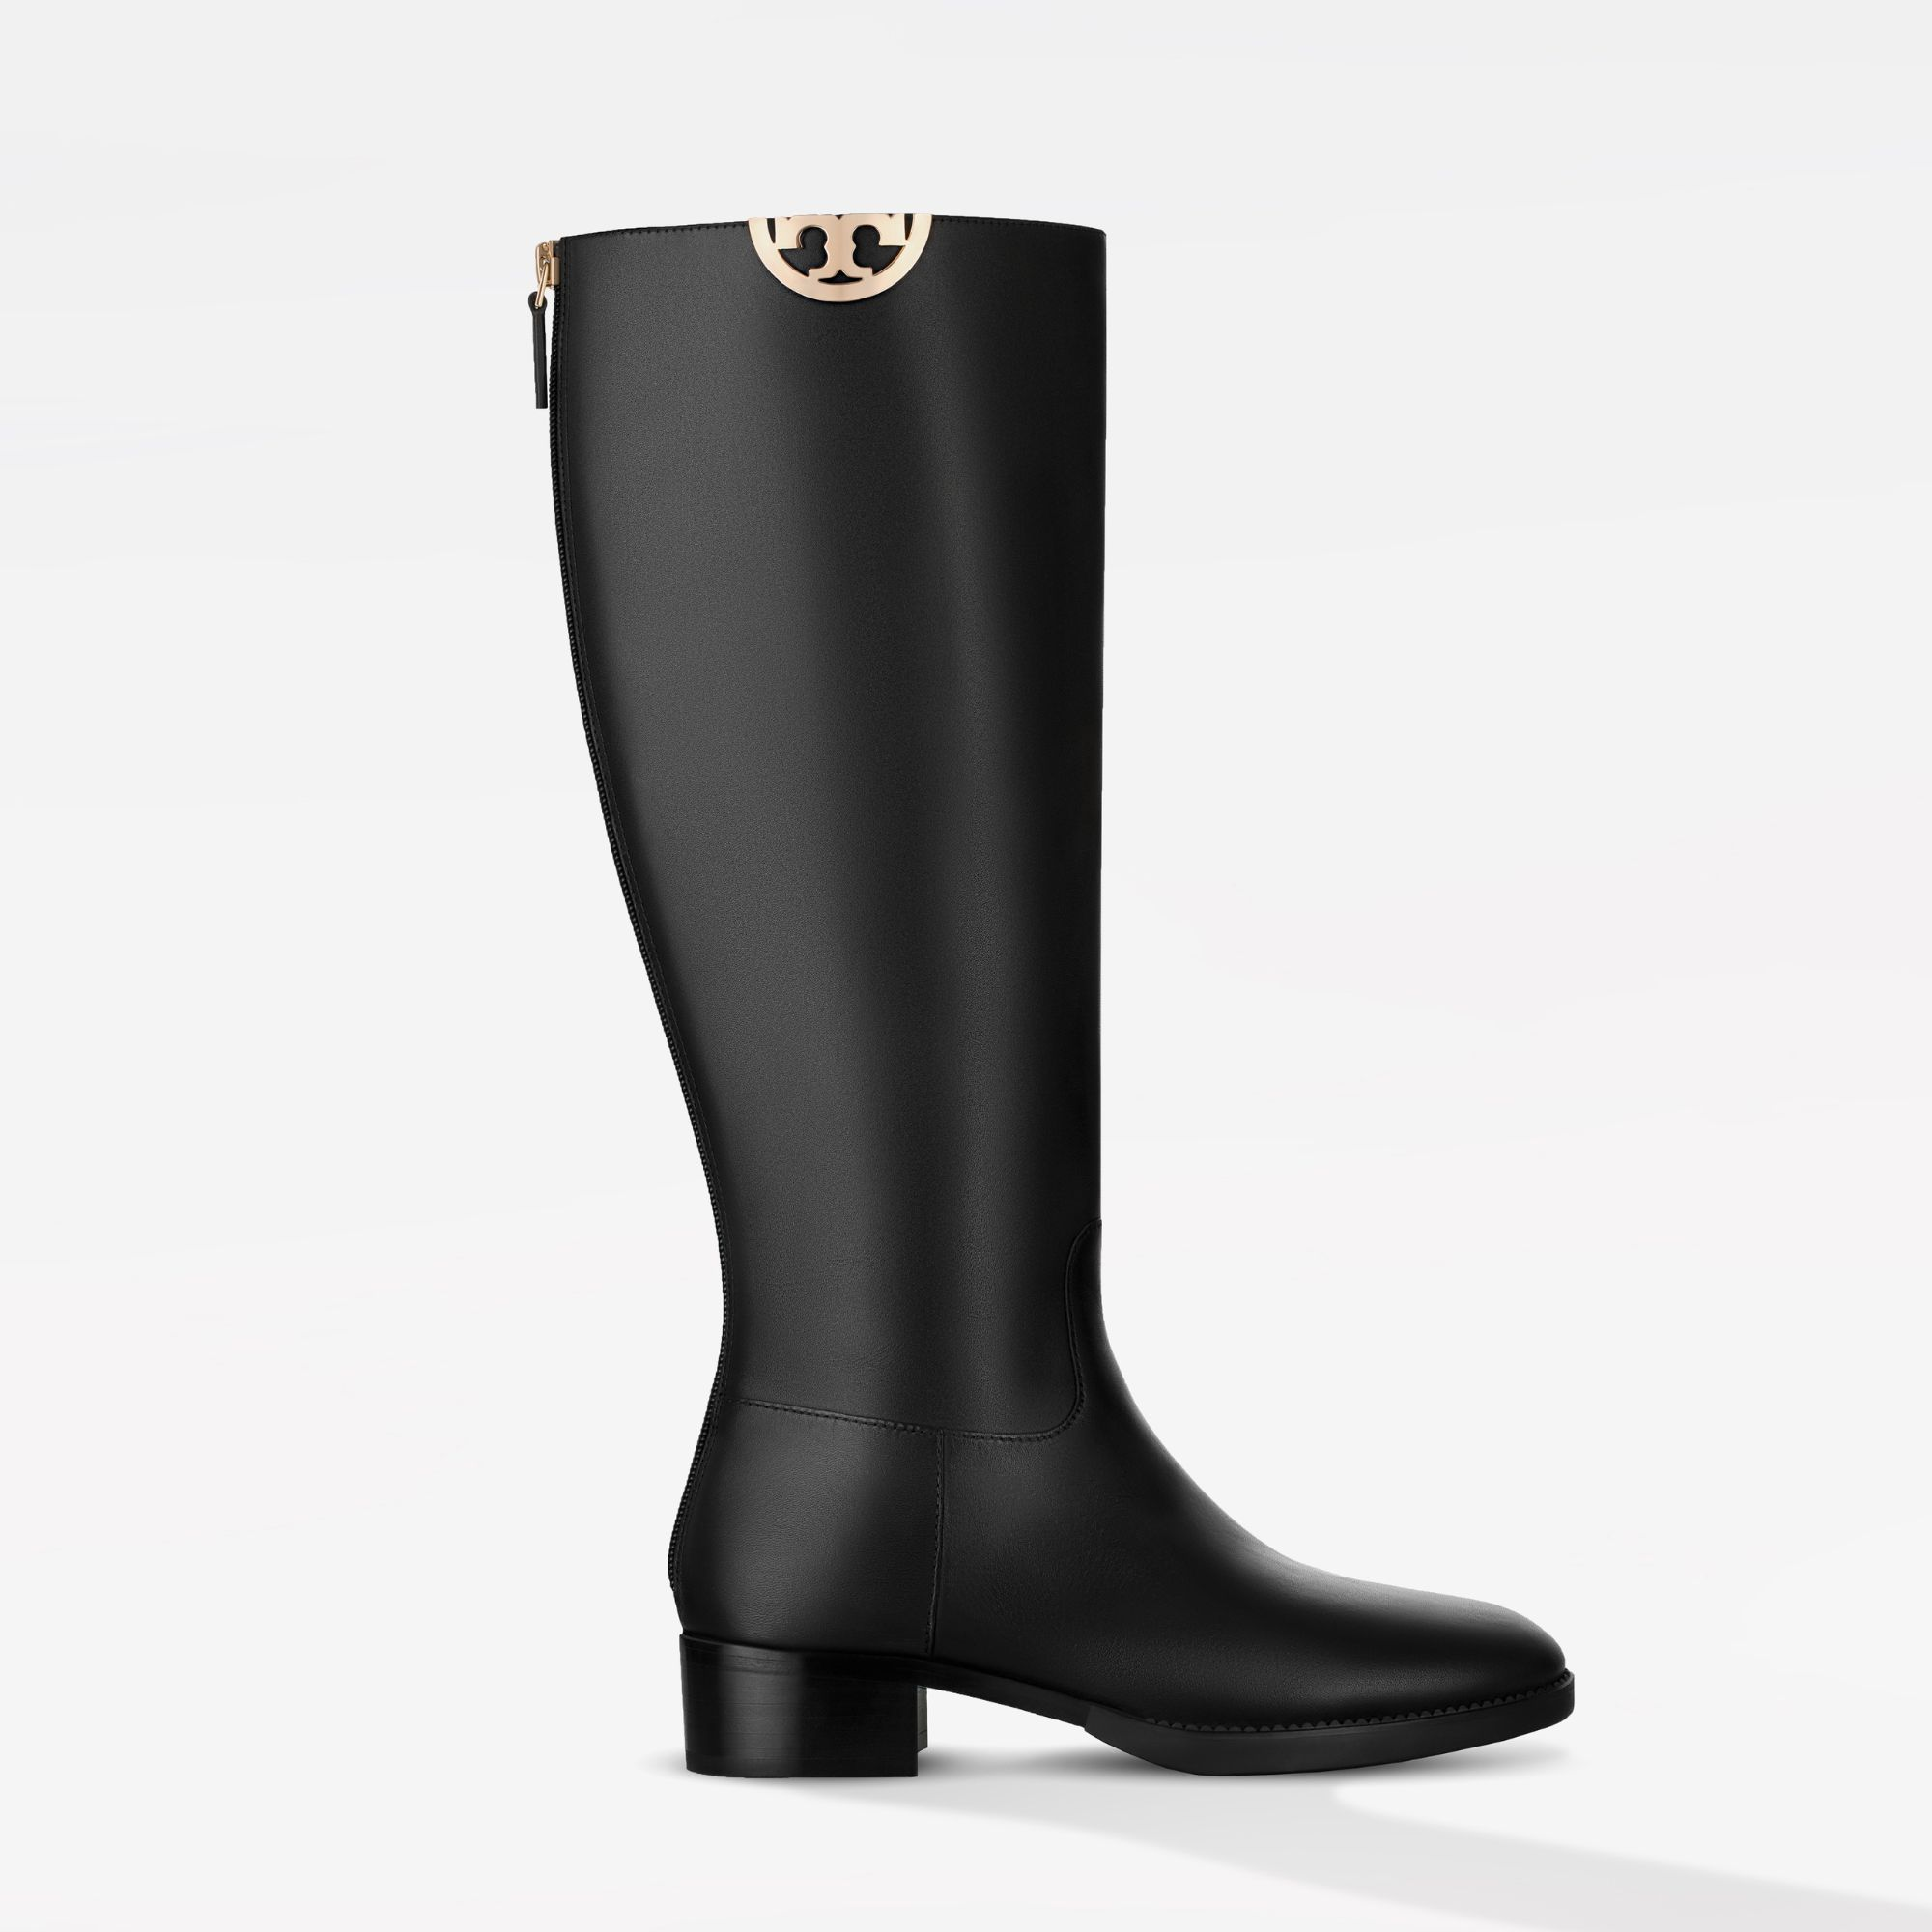 Tory Burch Boots Photoshoot for e-commerce purpose